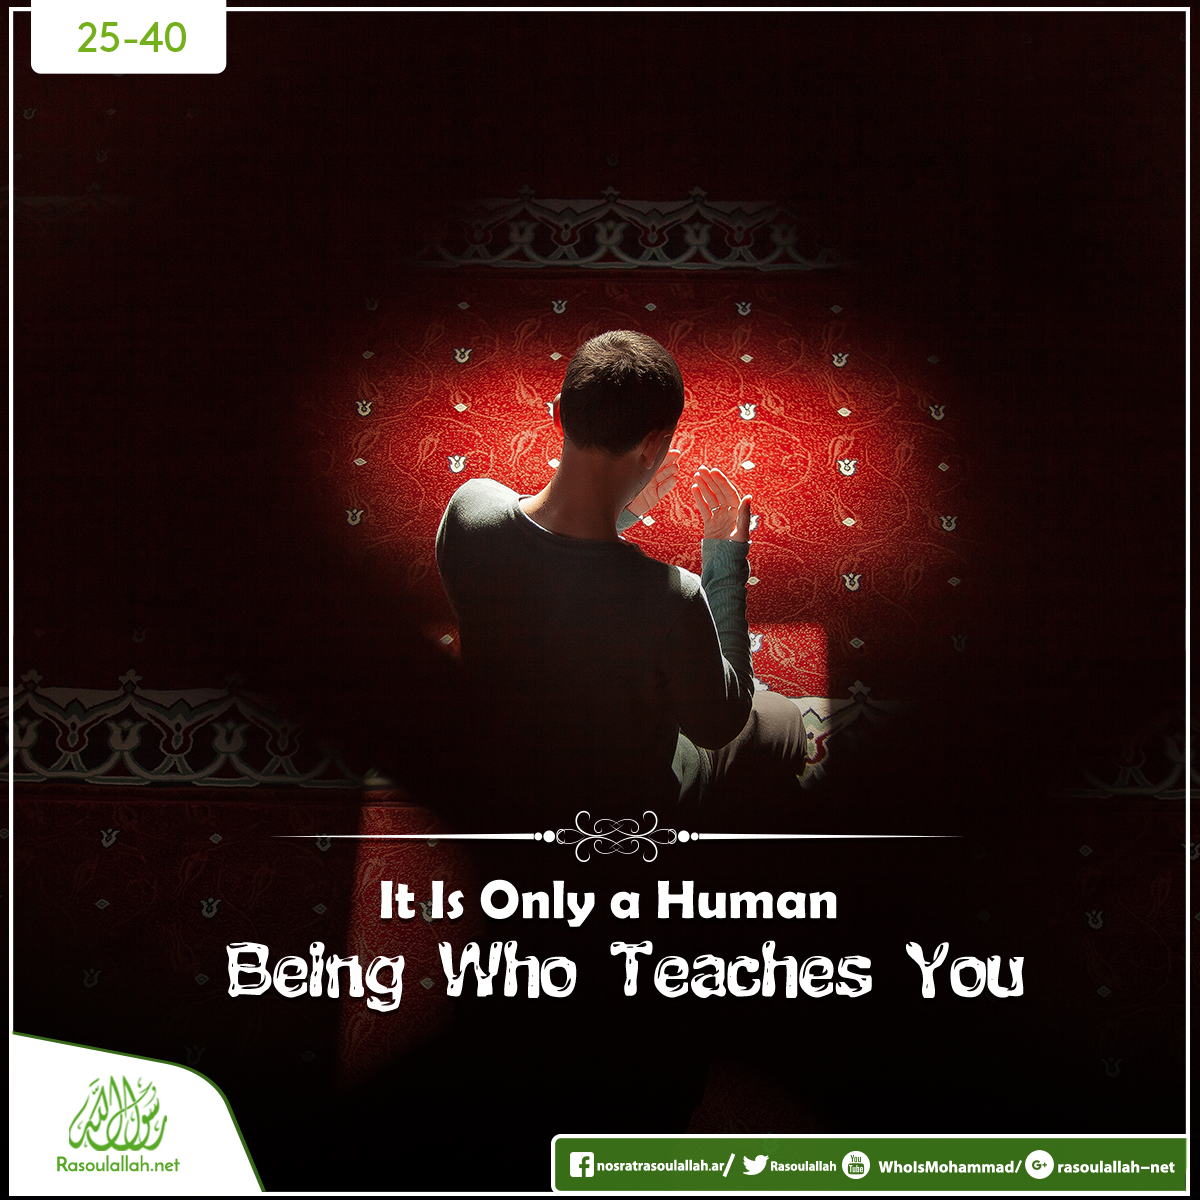 It is only a human being who teaches you